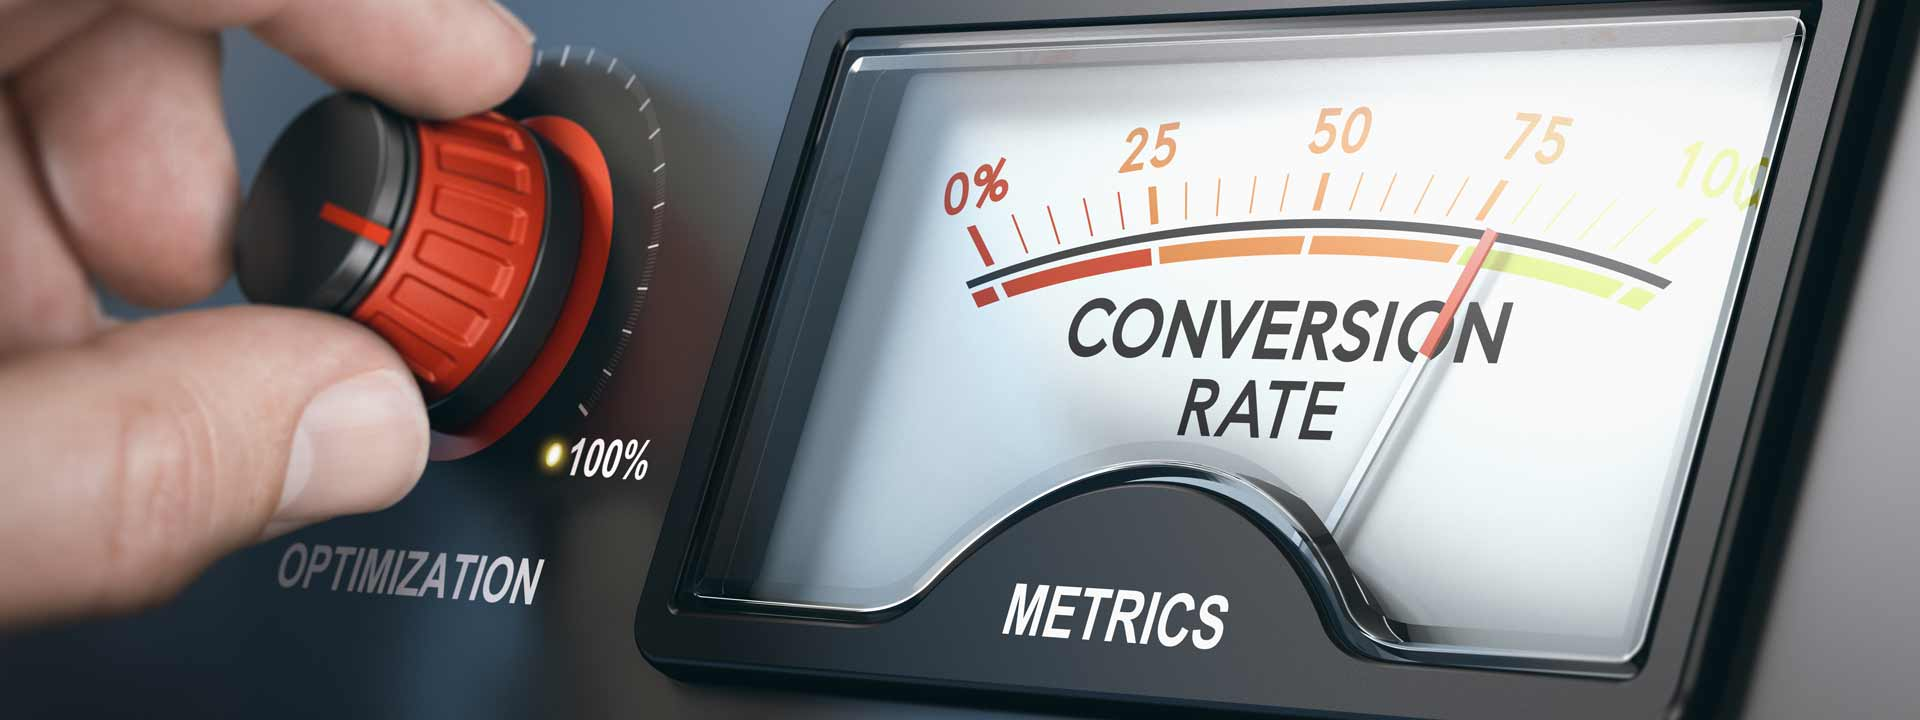 SEO Conversions as a ranking factor